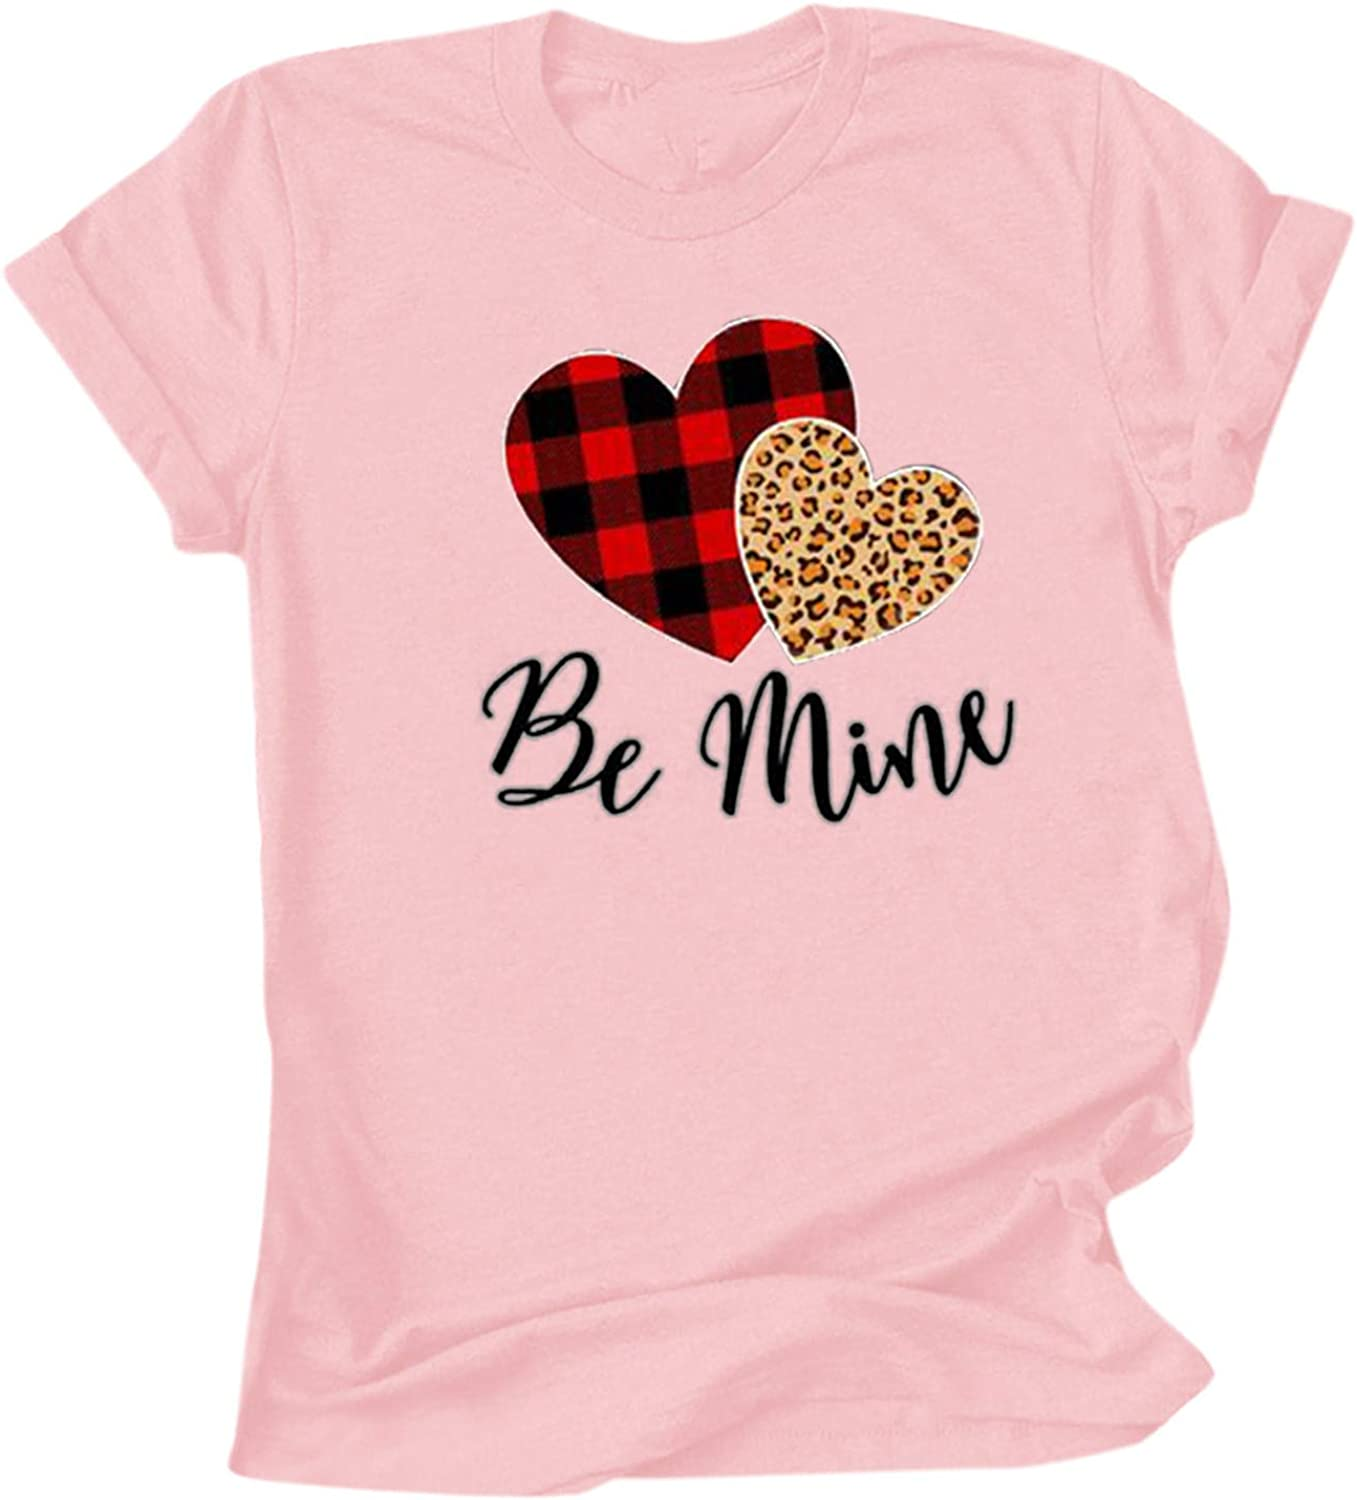 VEKDONE Womens Valentine's Day Graphic T Shirts Leopard Love Heart Printed Short Sleeve Basic Tee Blouse Tops